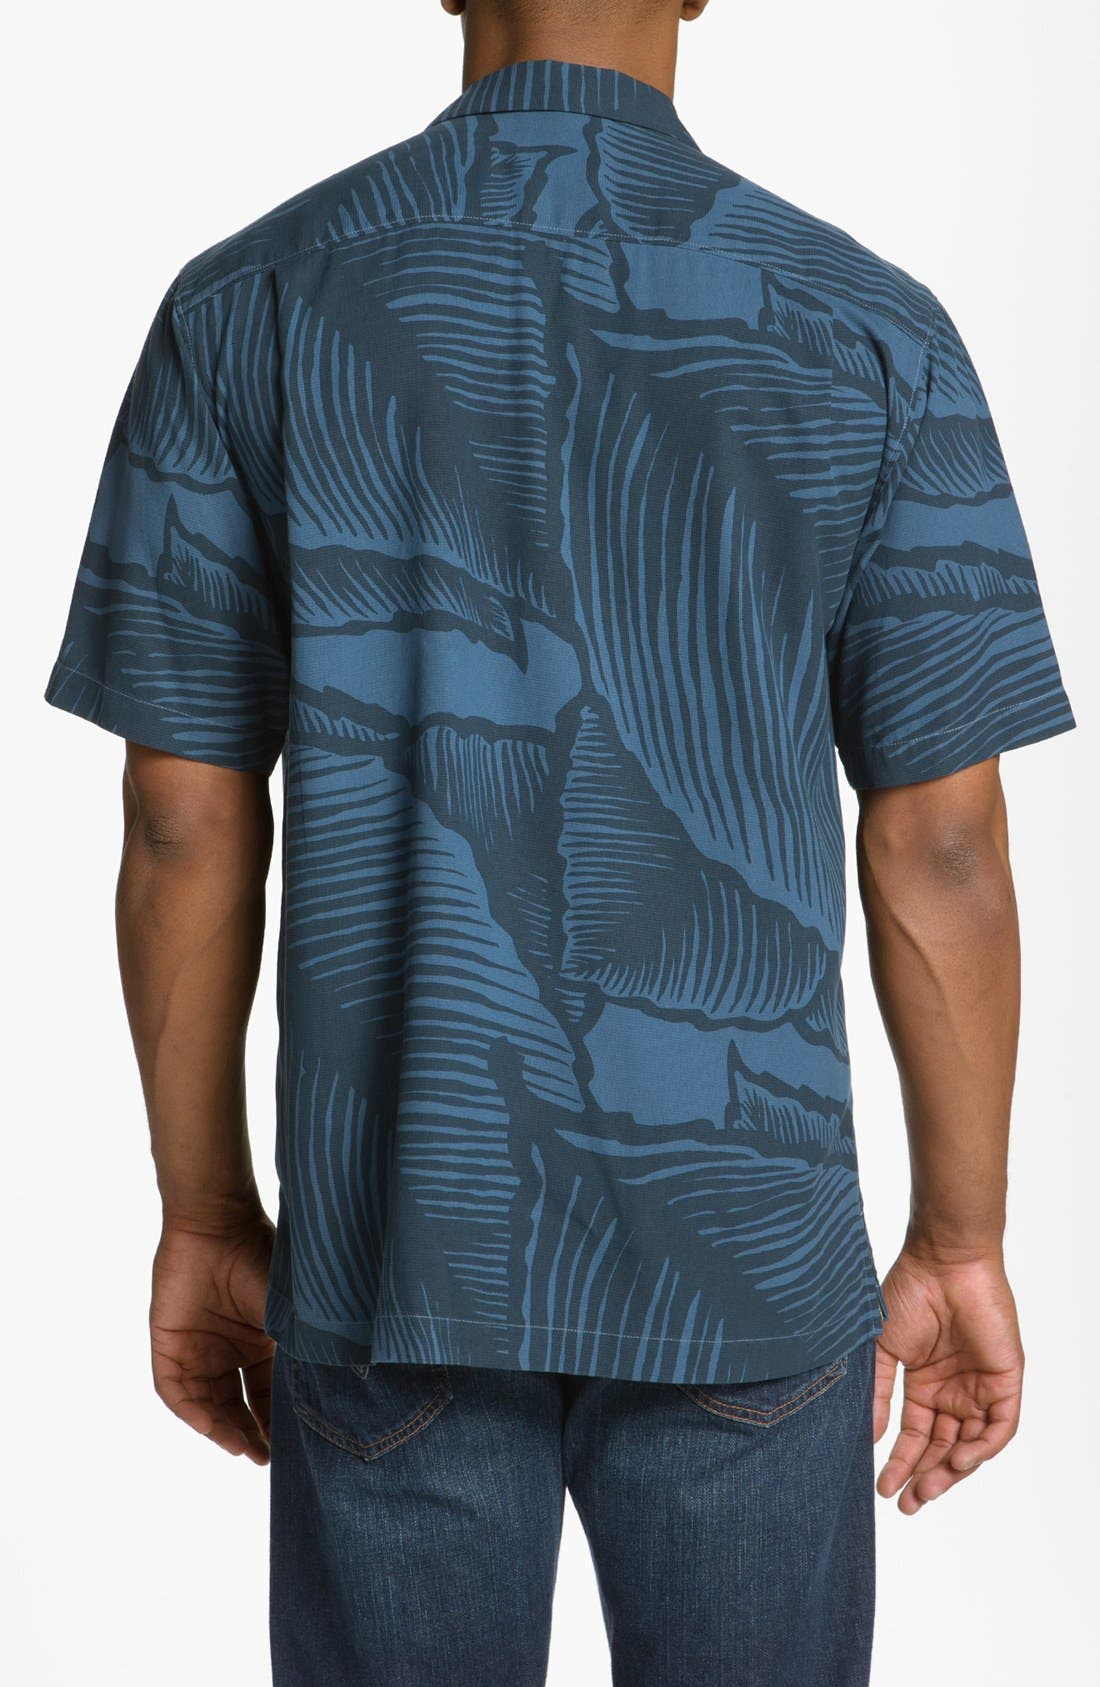 Alternate Image 2  - Tommy Bahama 'Grand Frond' Campshirt (Big & Tall)